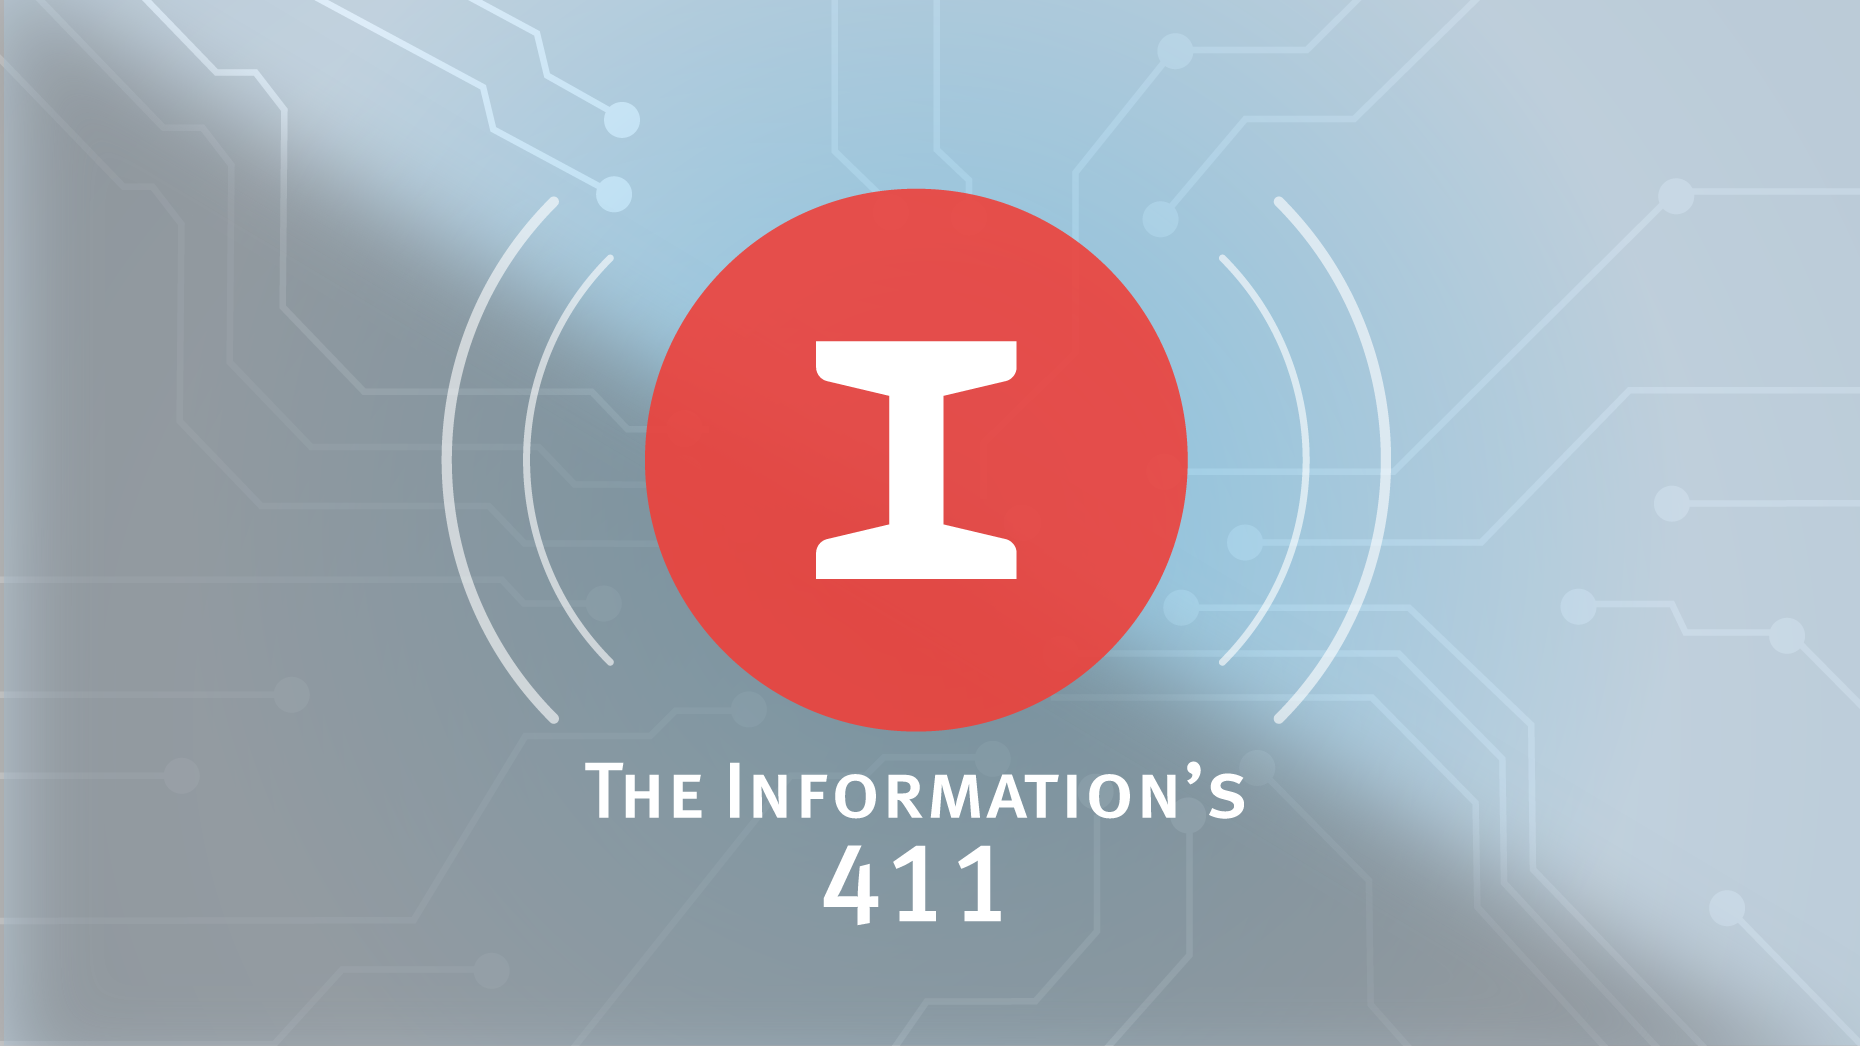 The Information's 411 — I Can See for Last Miles and Miles